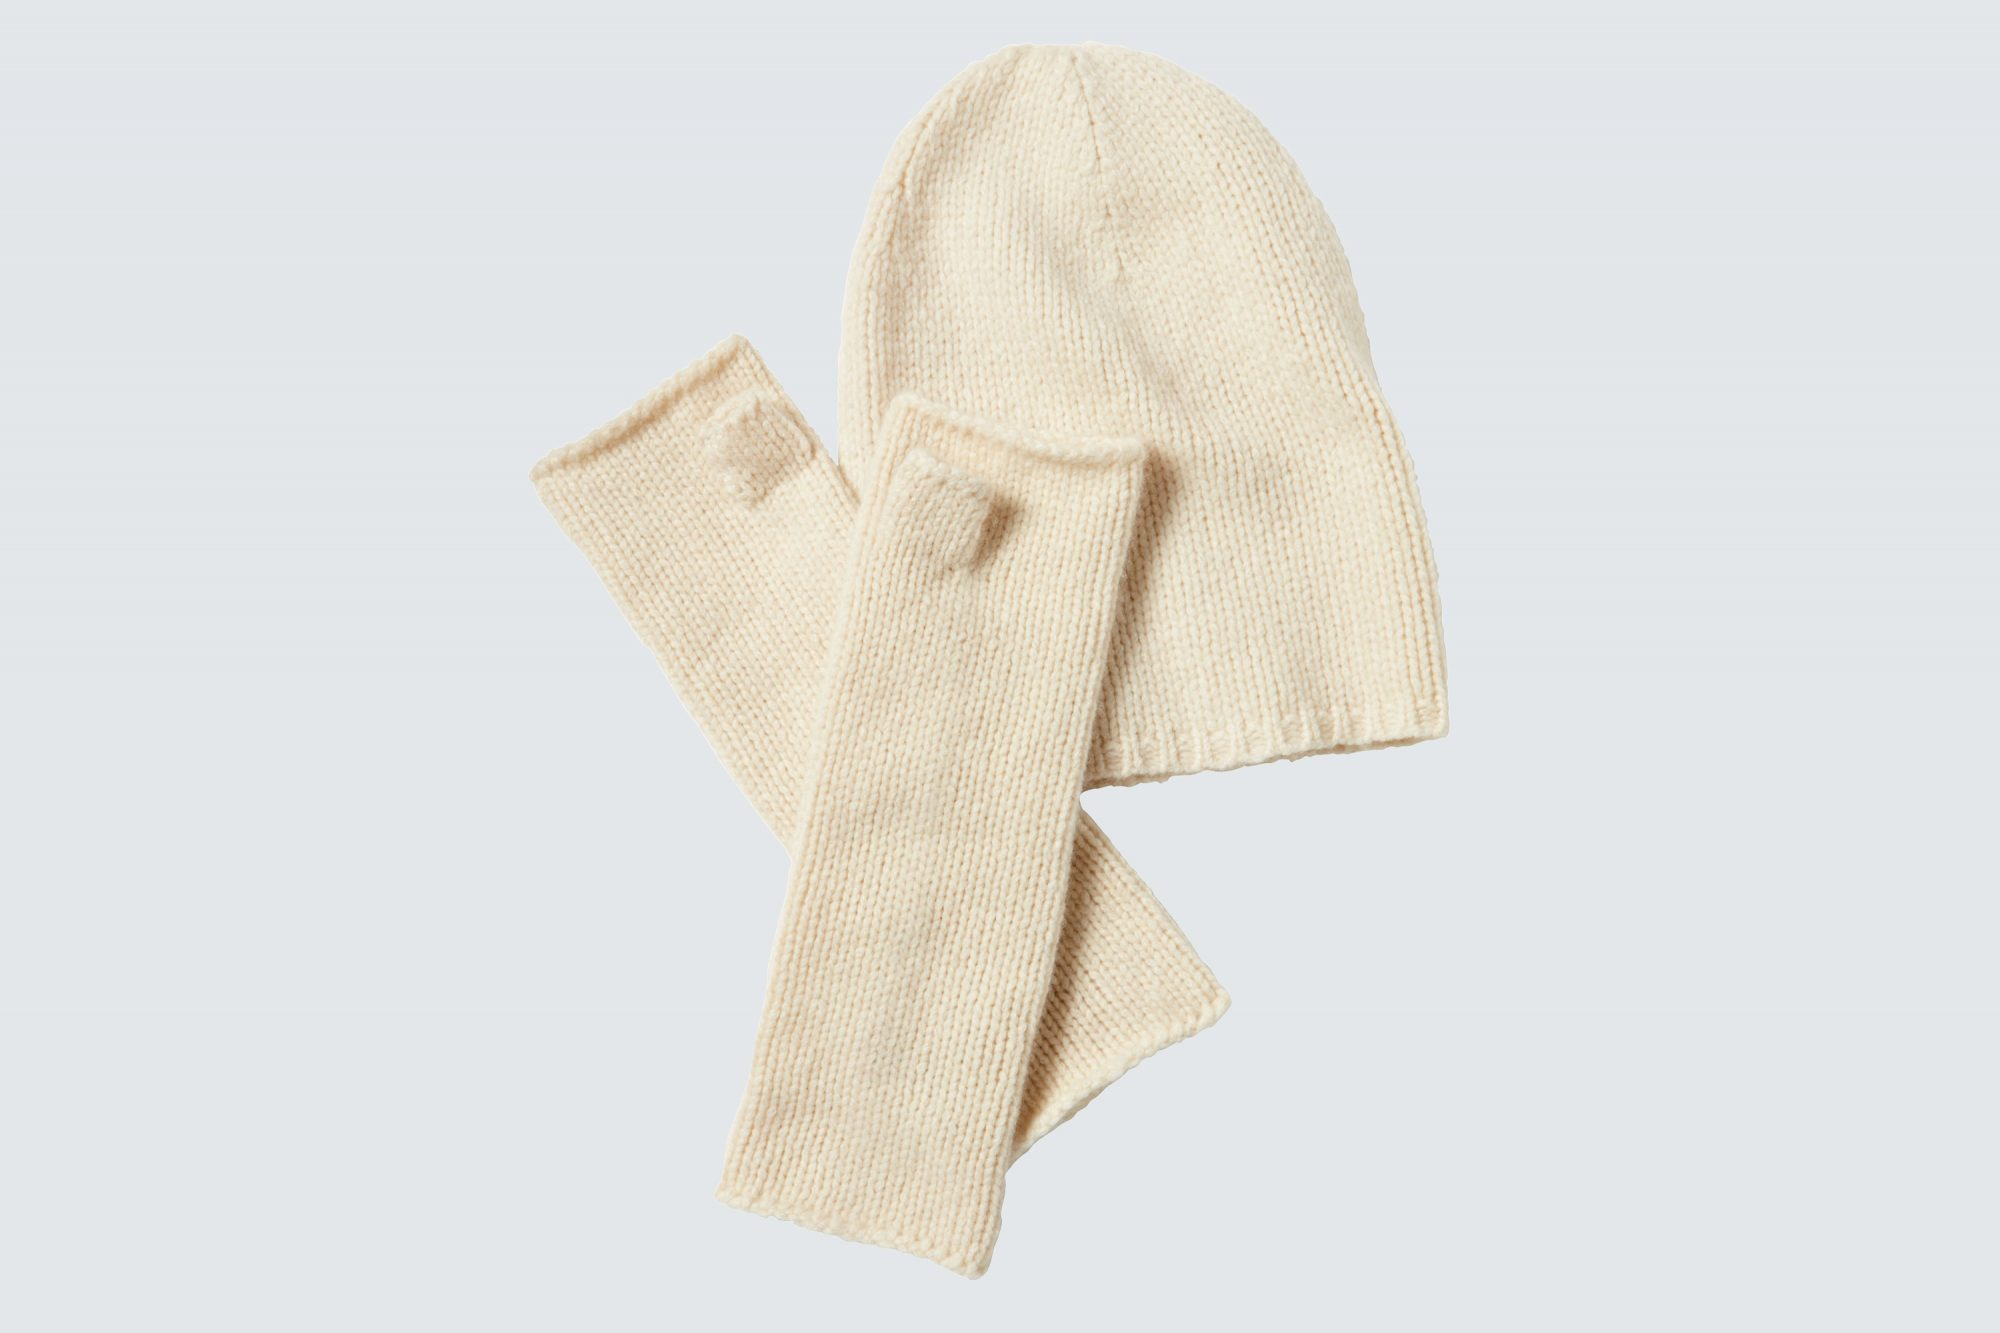 Recycled Cashmere Accessories